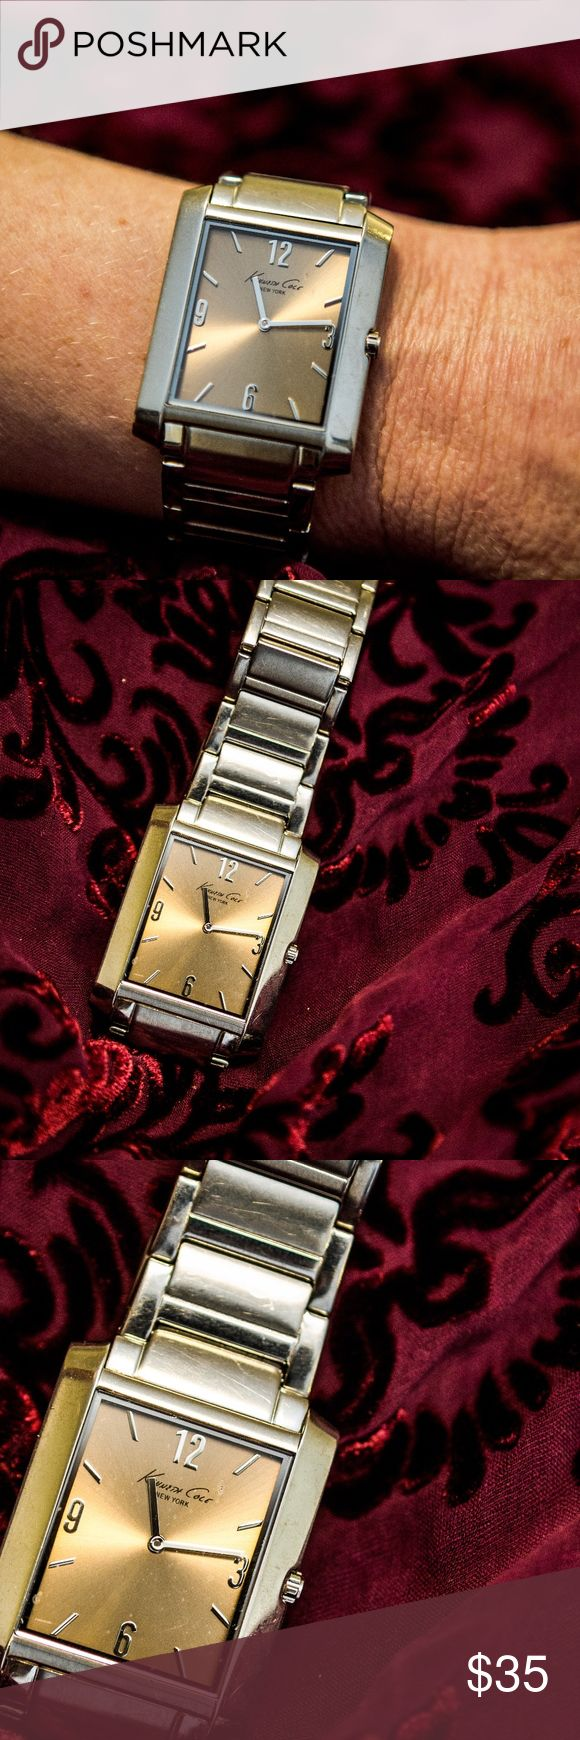 KENNETH COLE   l   WOMEN'S SILVER WATCH Bigger is better! This beautiful silver tone Kenneth Cole watch for women is a show stopper. The face is in gold tone with silver numbers/symbols. Sized for a smaller wrist. Kenneth Cole Accessories Watches